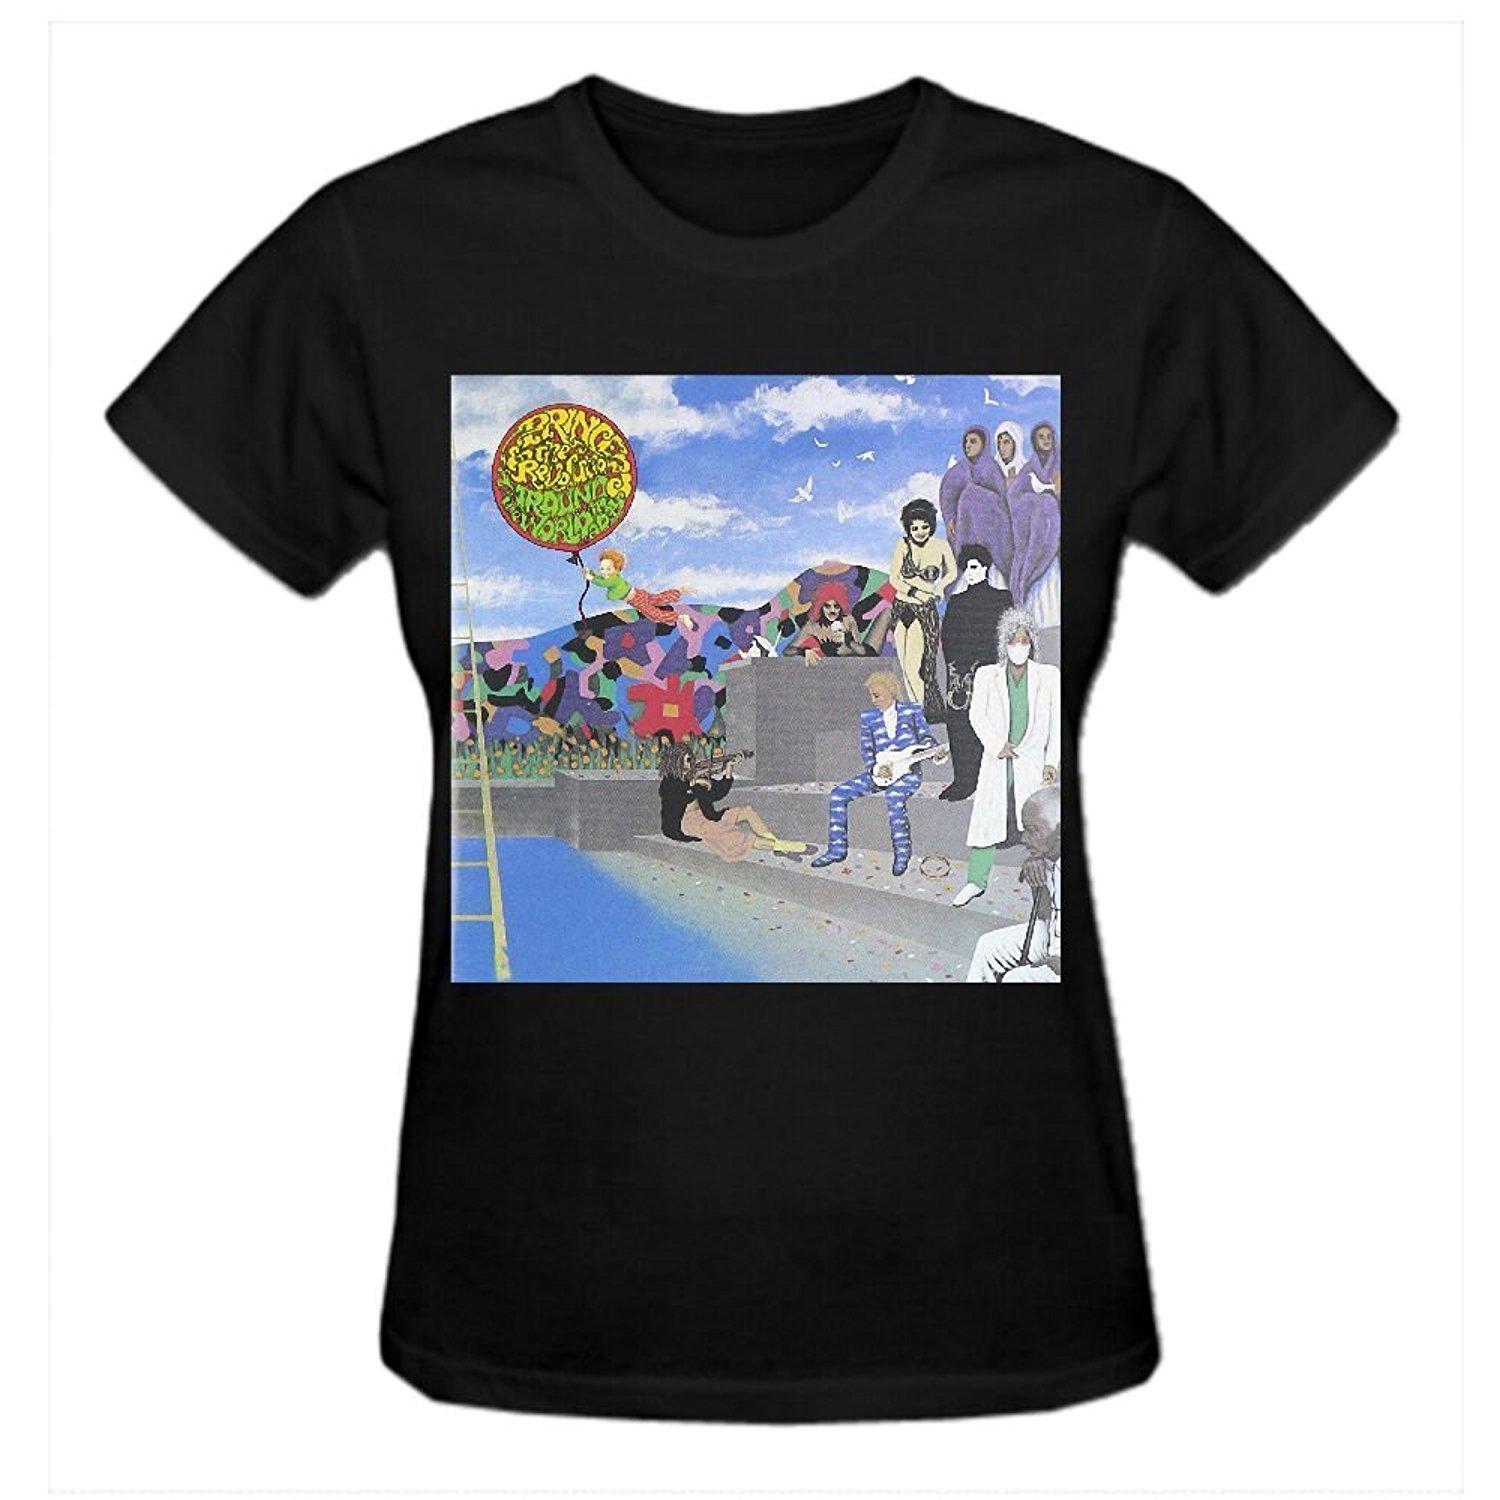 Compare prices on princes day online shopping buy low for Create your own t shirt store online